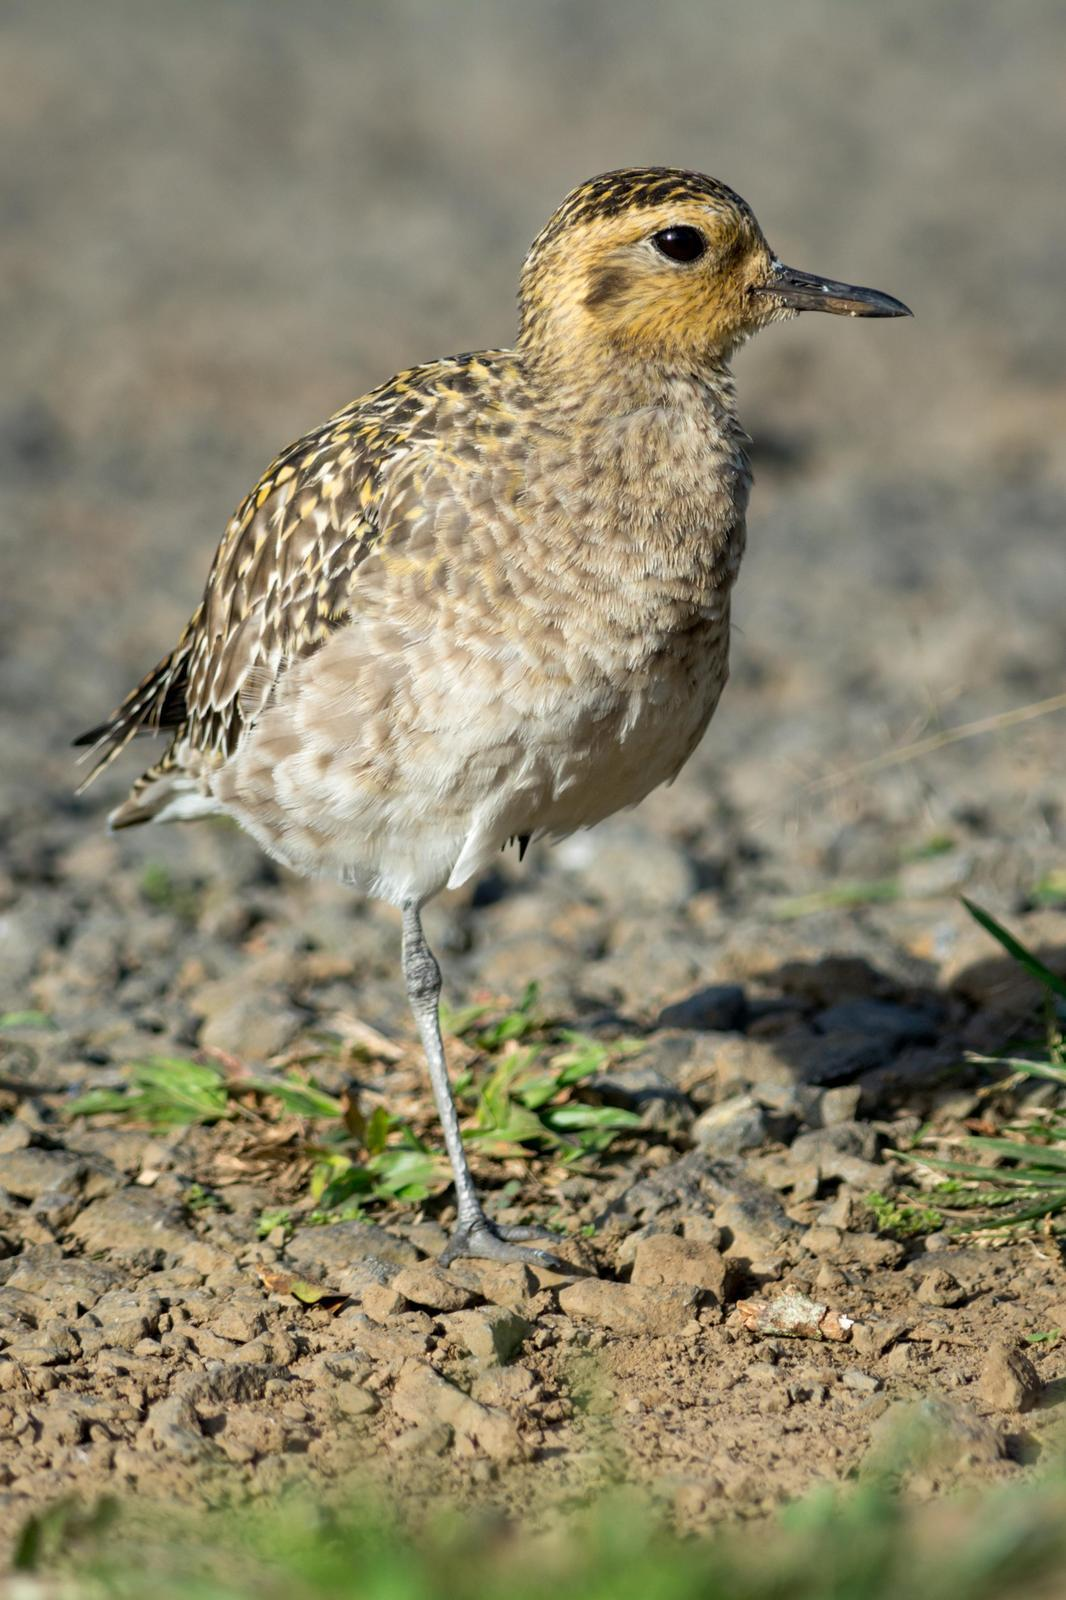 Pacific Golden-Plover Photo by Jesse Hodges